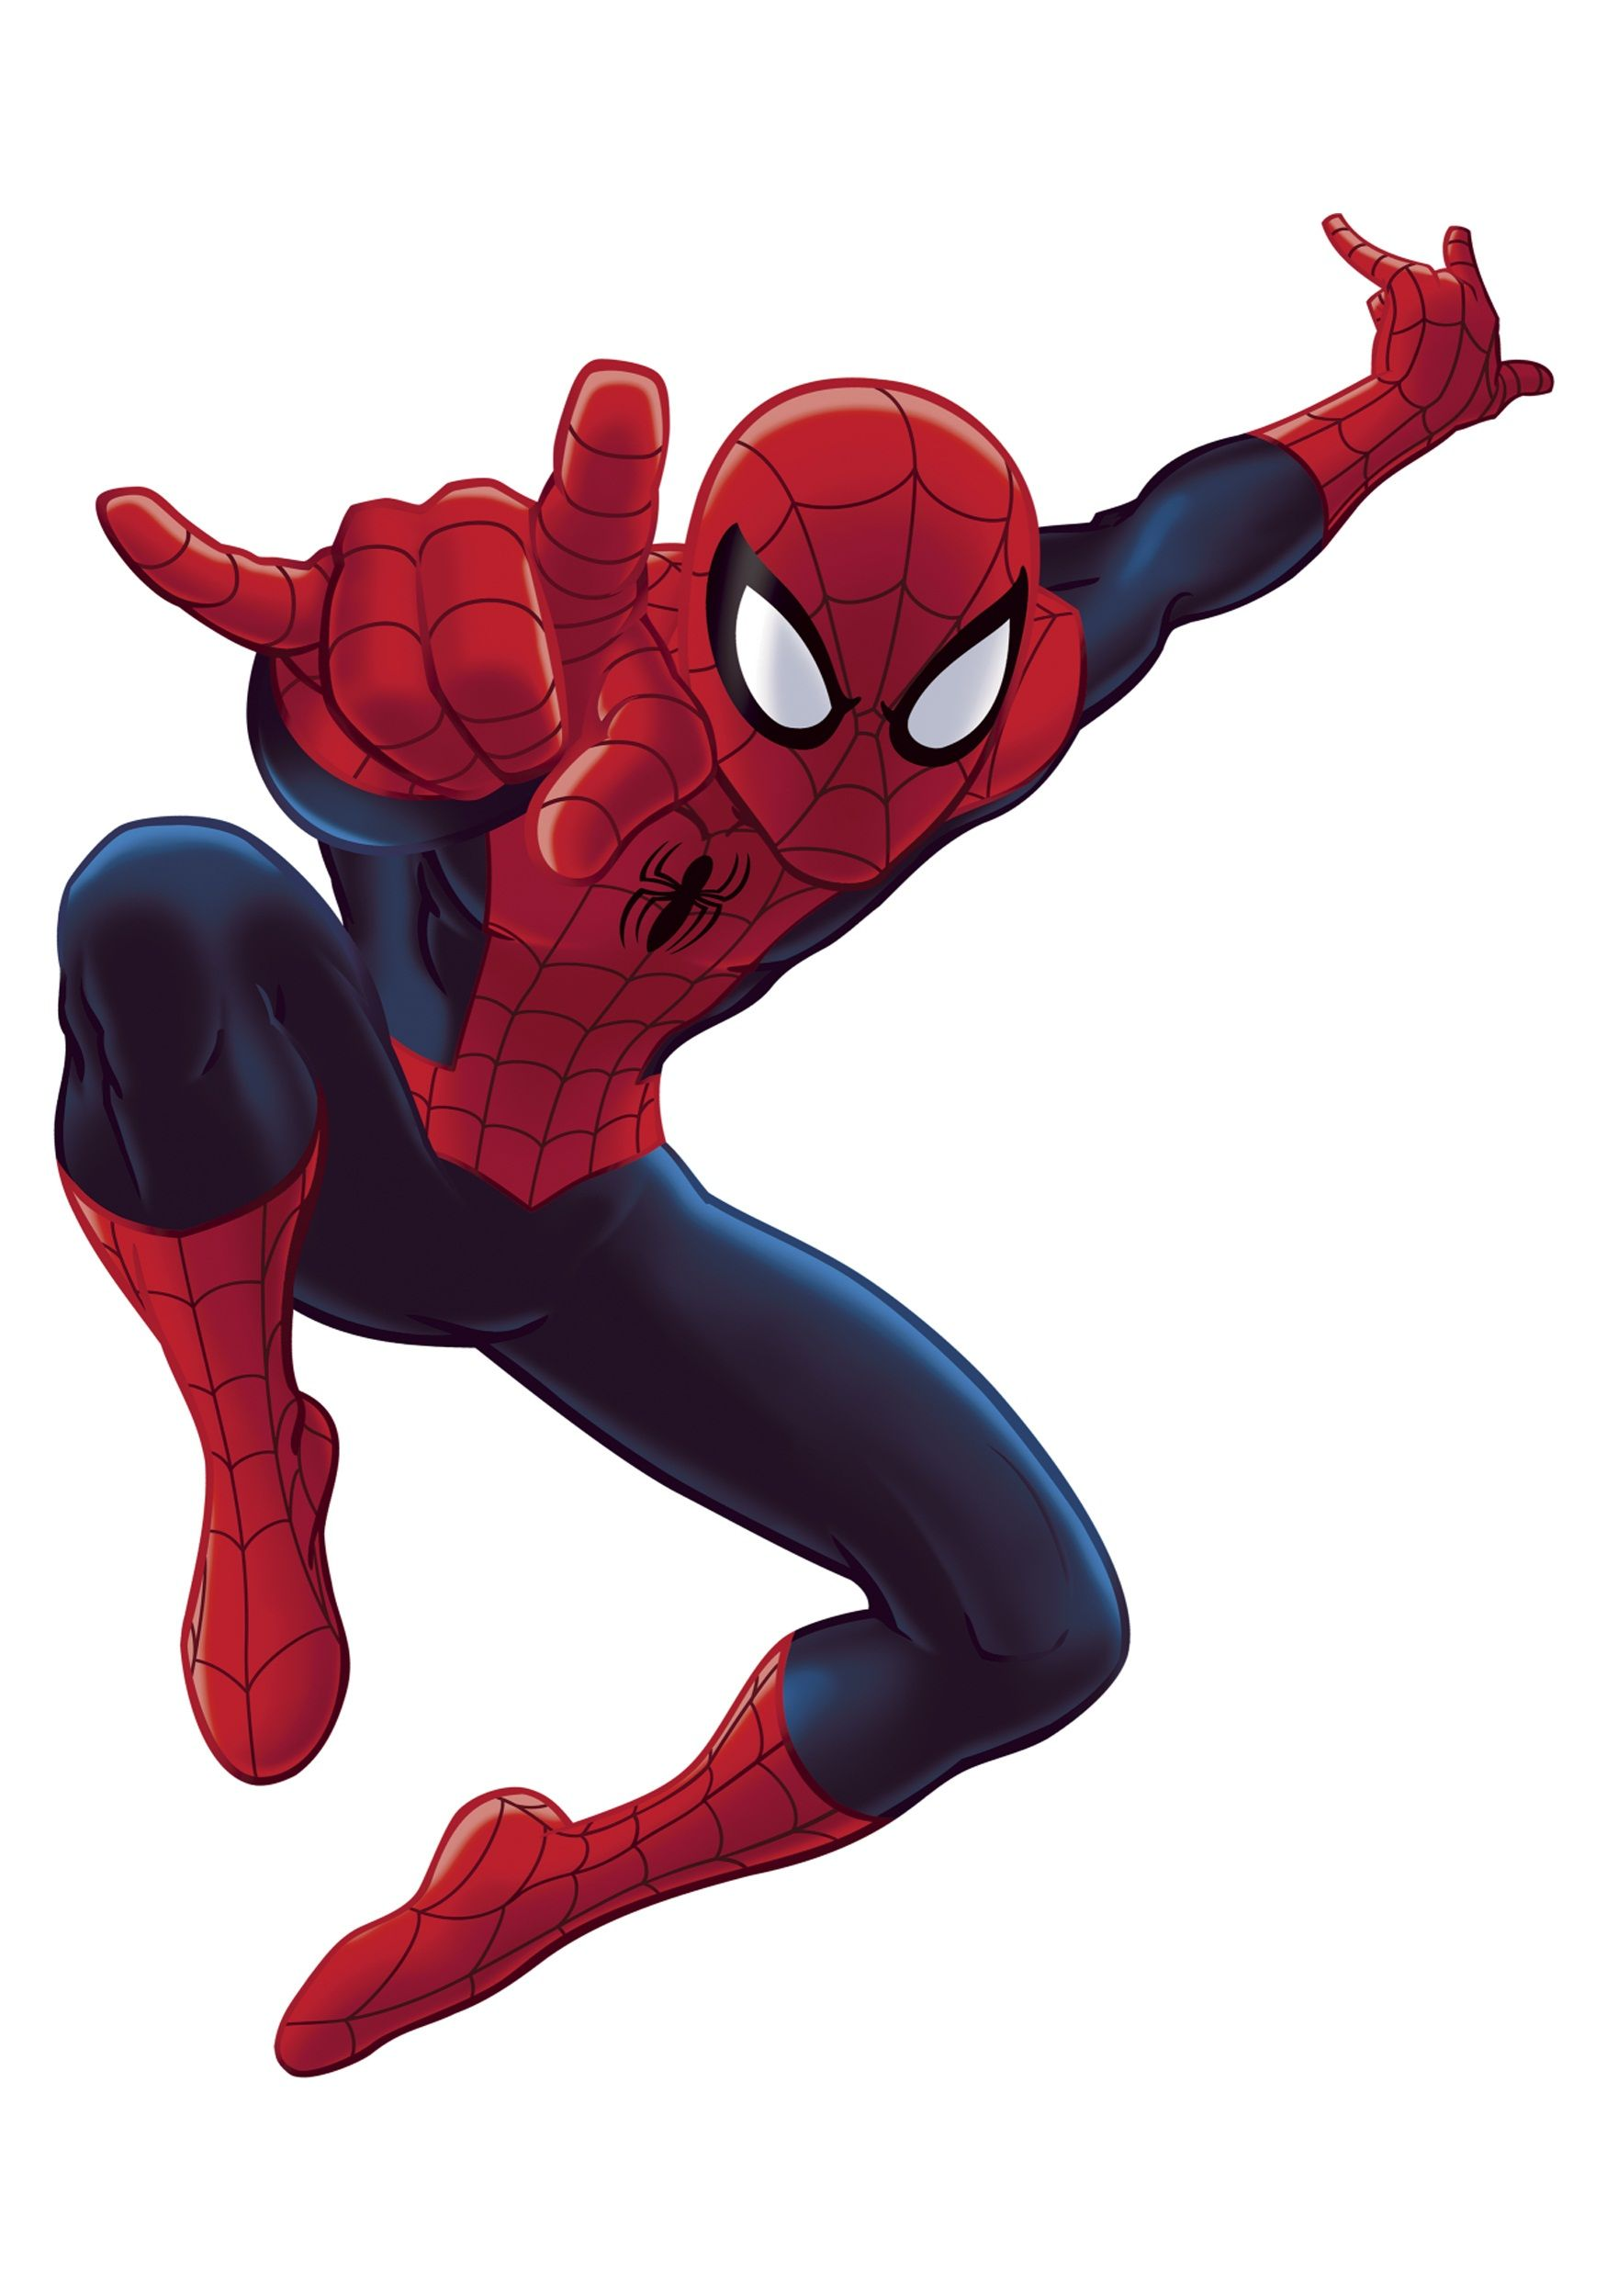 Spiderman clipart. At getdrawings com free